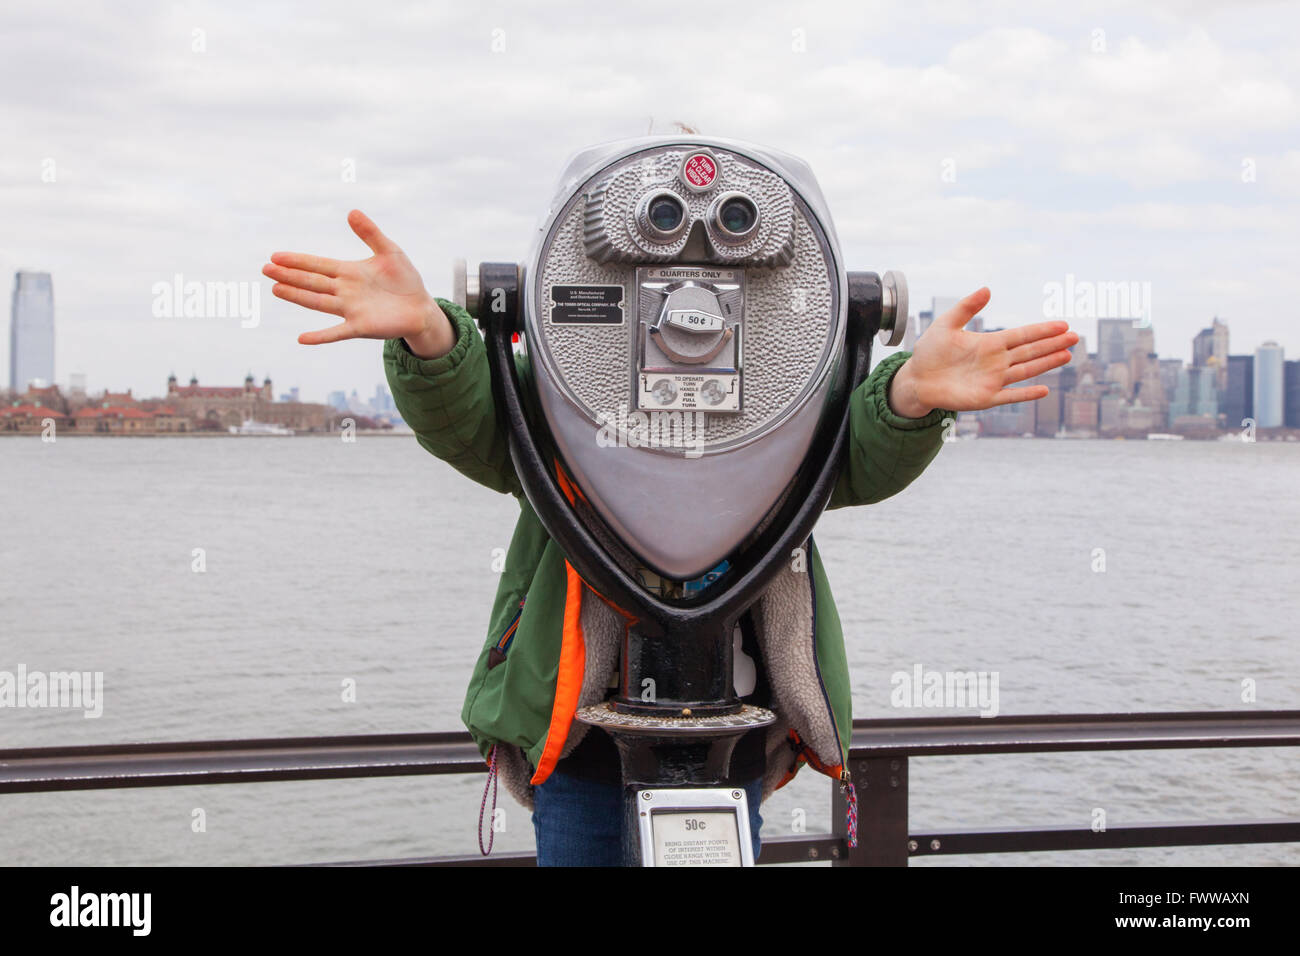 Six year old boy behind coin operated binoculars, Liberty island, New York, United States of America. - Stock Image